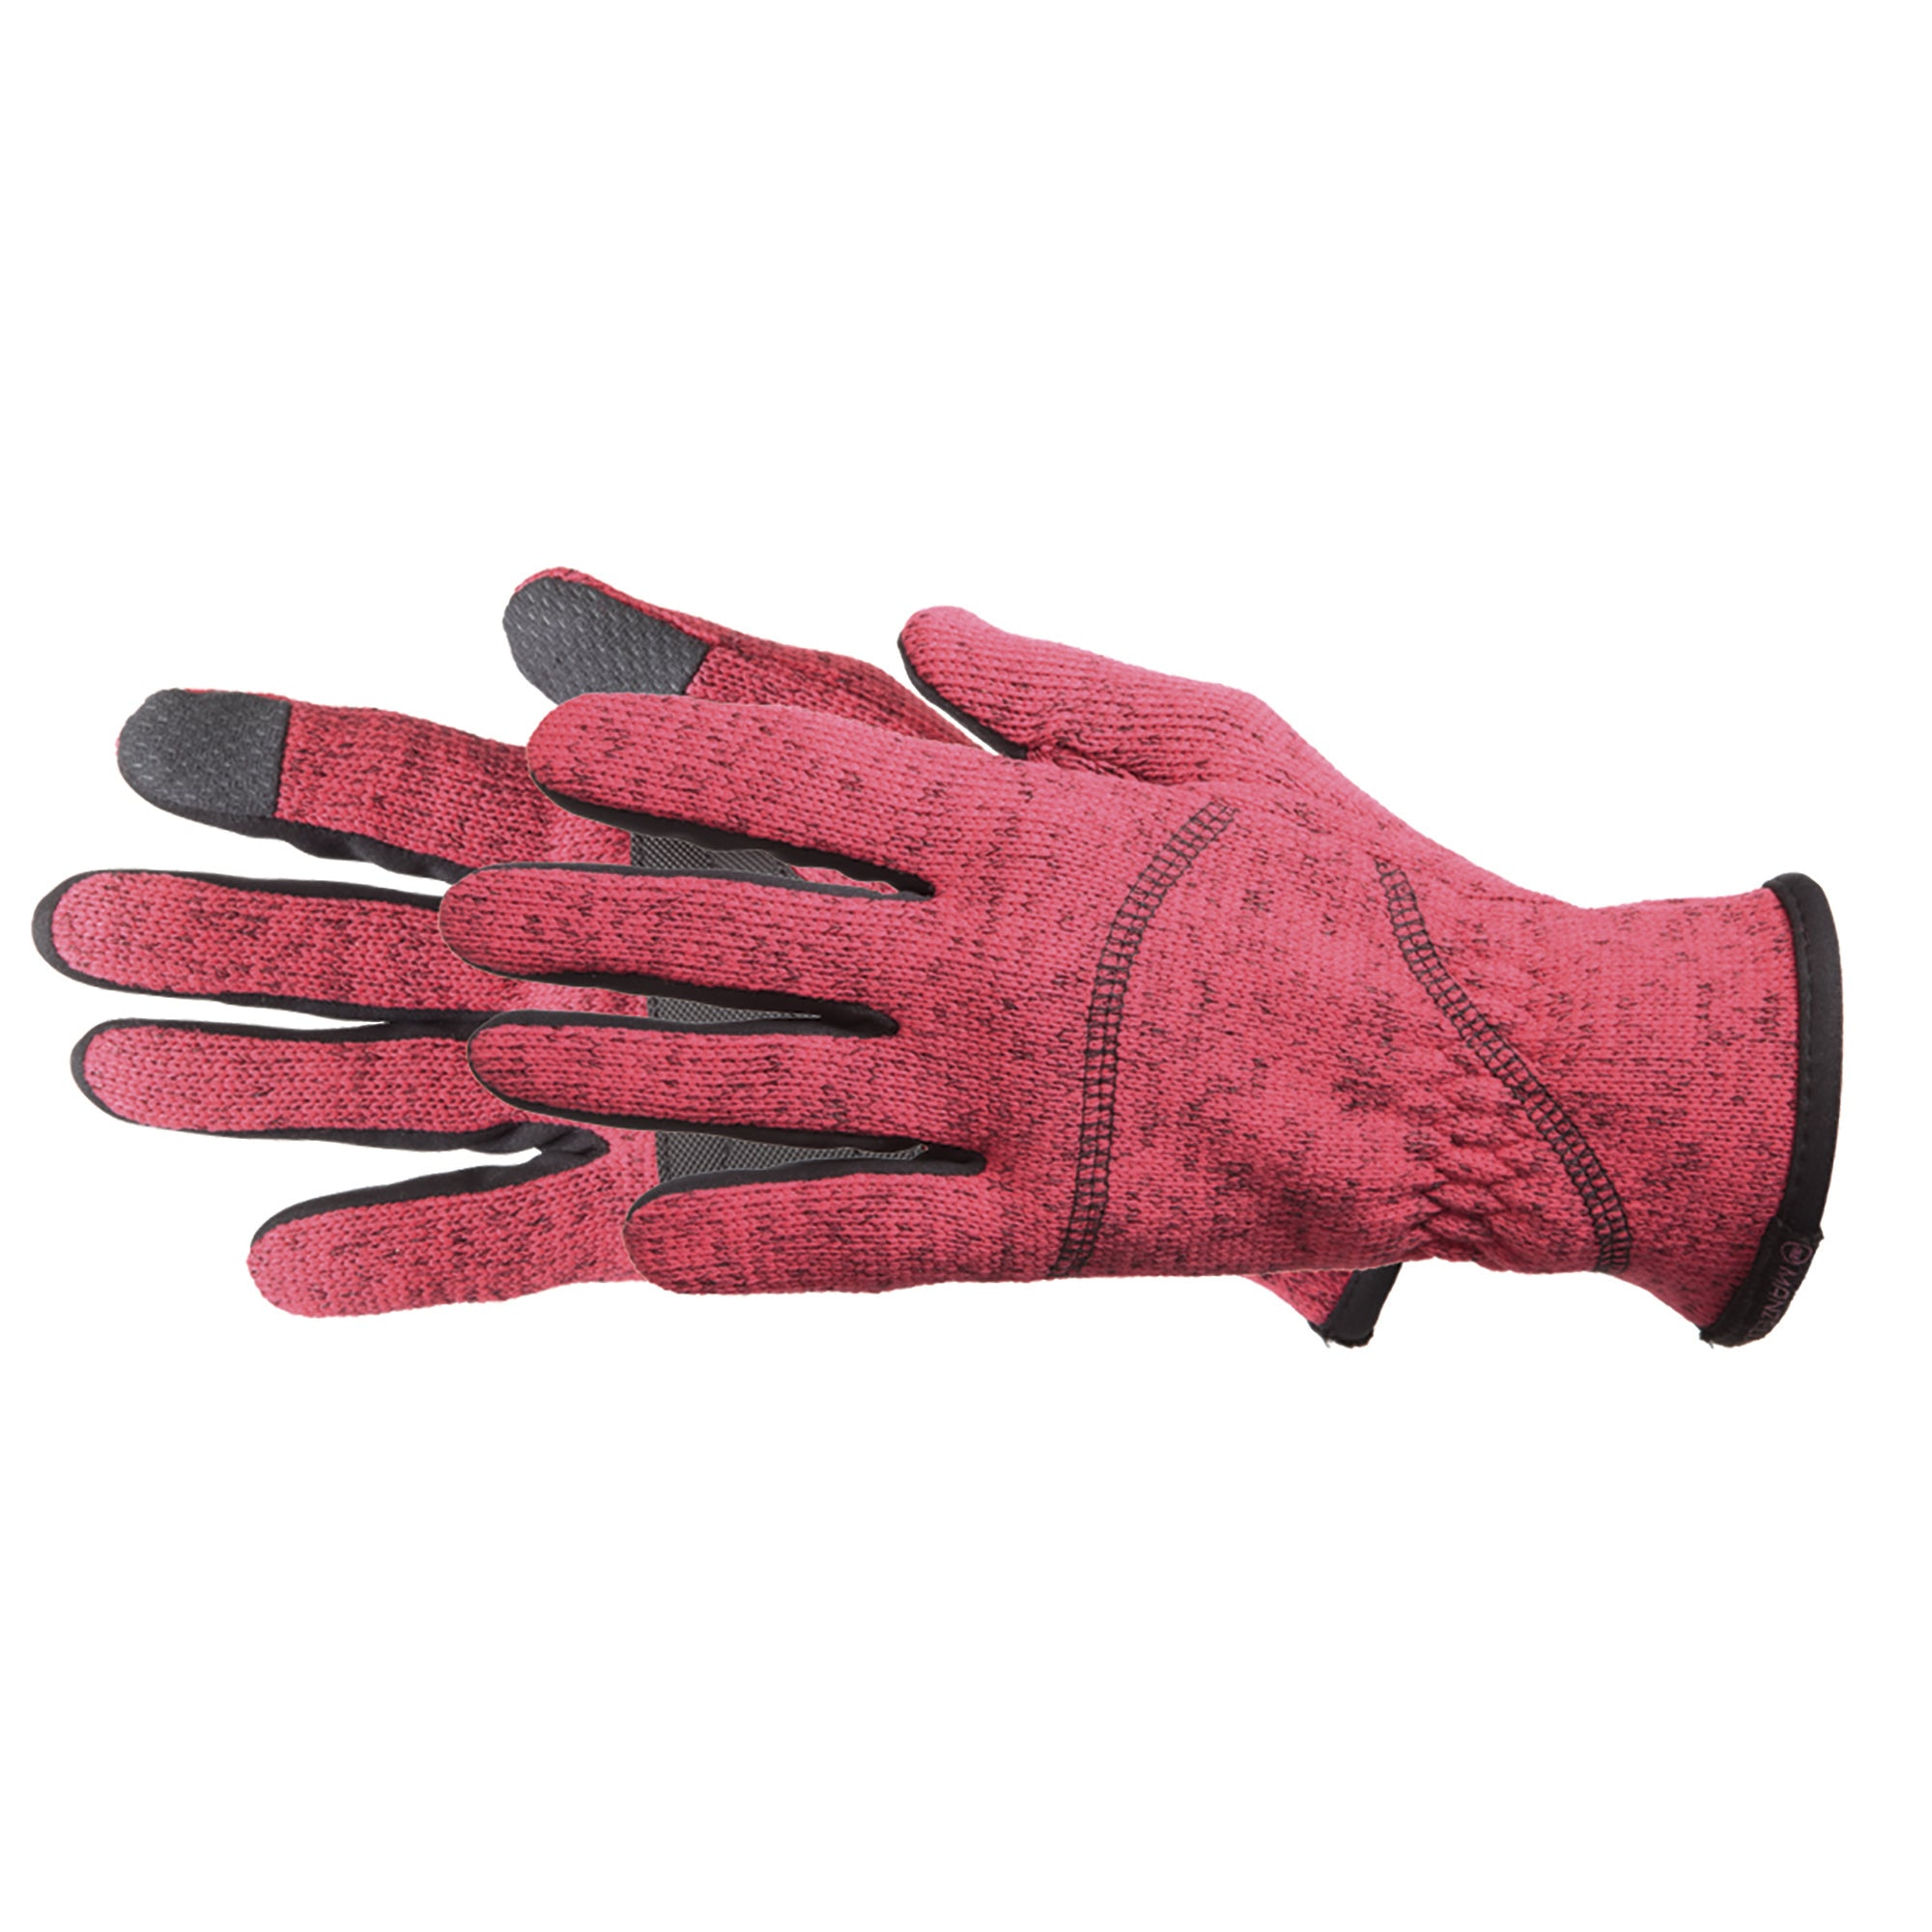 Manzella HEIDI Outdoor Gloves for Women